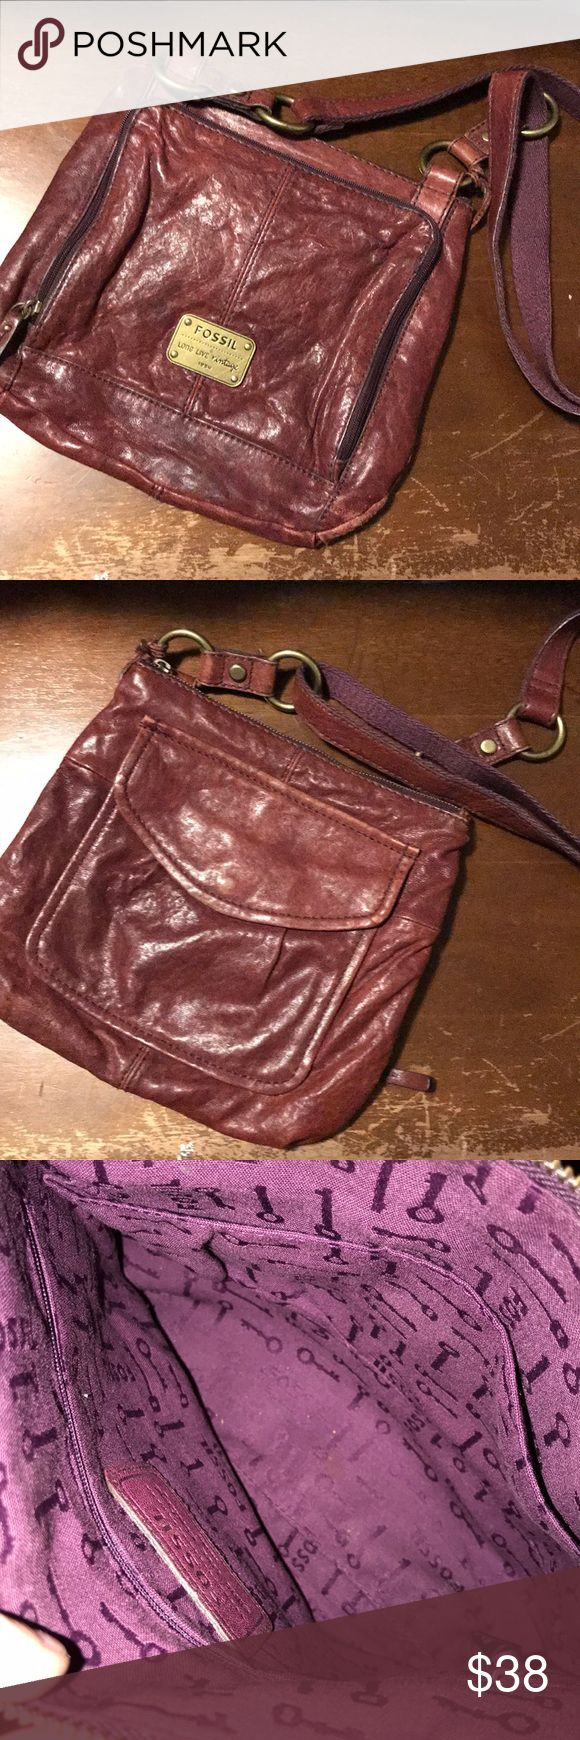 Body Fossil purse It has a longer strap to hang over the shoulder or however you'd like. It is a deep red/purple. It has many pockets and compartments for being a thinner purse. It lays flat. There are no issues with it except on the zipper the tag came off so you have to grab the zipper to unzip. It is really not difficult at all the zipper it's self works perfectly. And as a fellow posher I always except counters😊 Fossil Bags Shoulder Bags